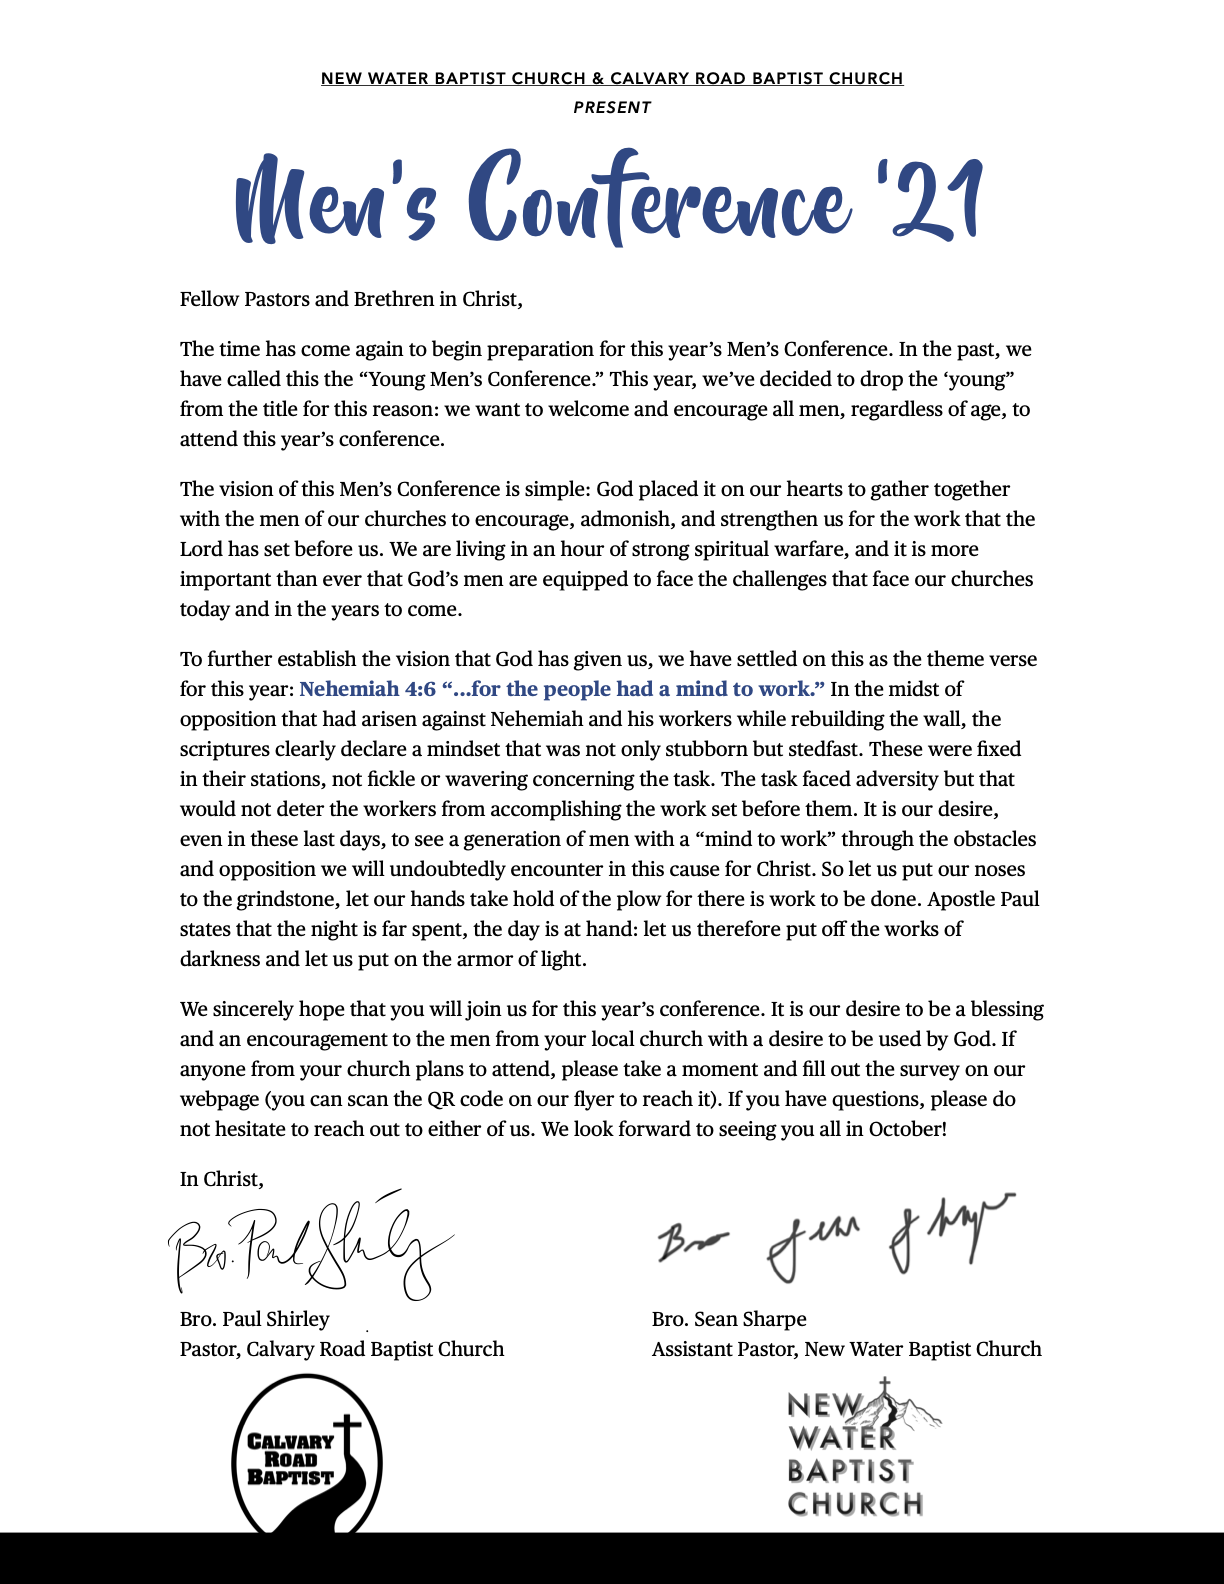 Letter for the Men's Conference '21